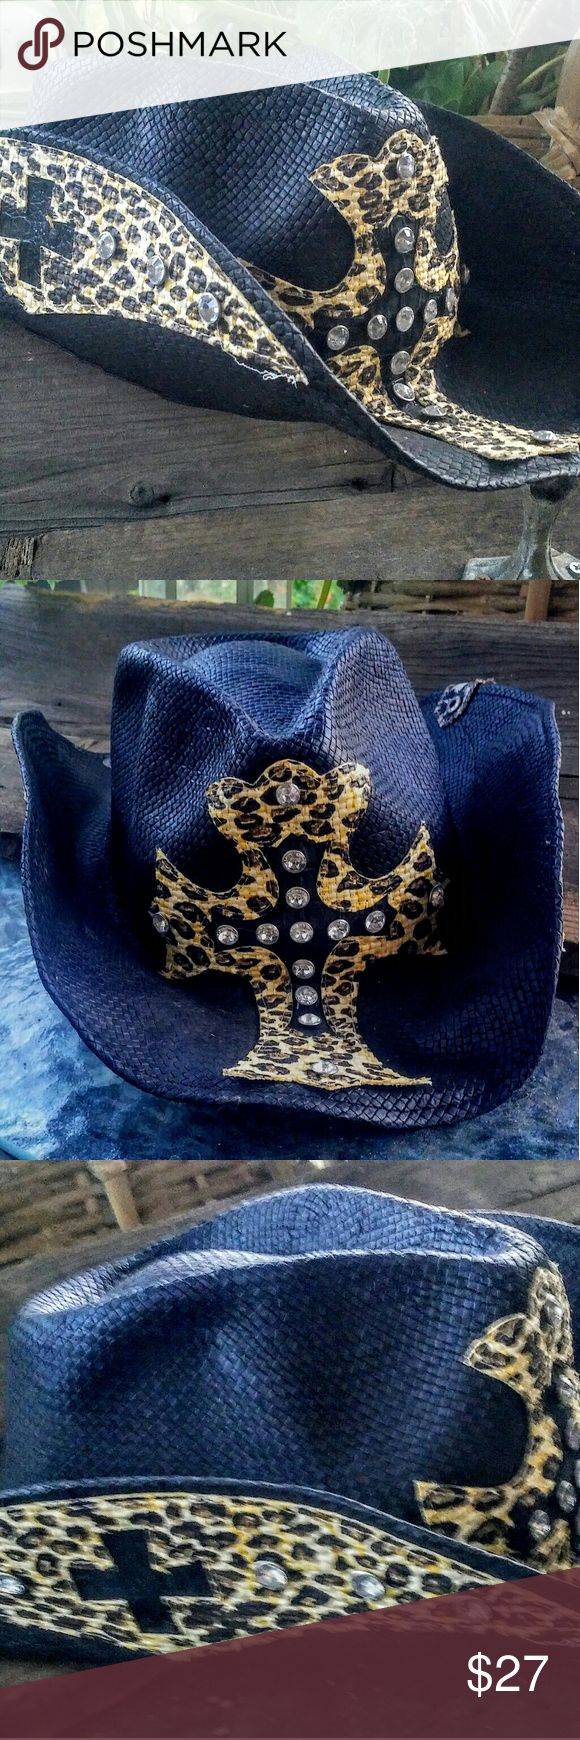 Black Straw Bling Cross Peter Grimm Cowboy Hat Urban Cowgirl Black Leopard Rhinestone Cross Original Peter Grimm Western Cowboy Hat, Secret inside pocket, fully lined...Previously owned in good condition, one size fits all Peter Grimm Accessories Hats